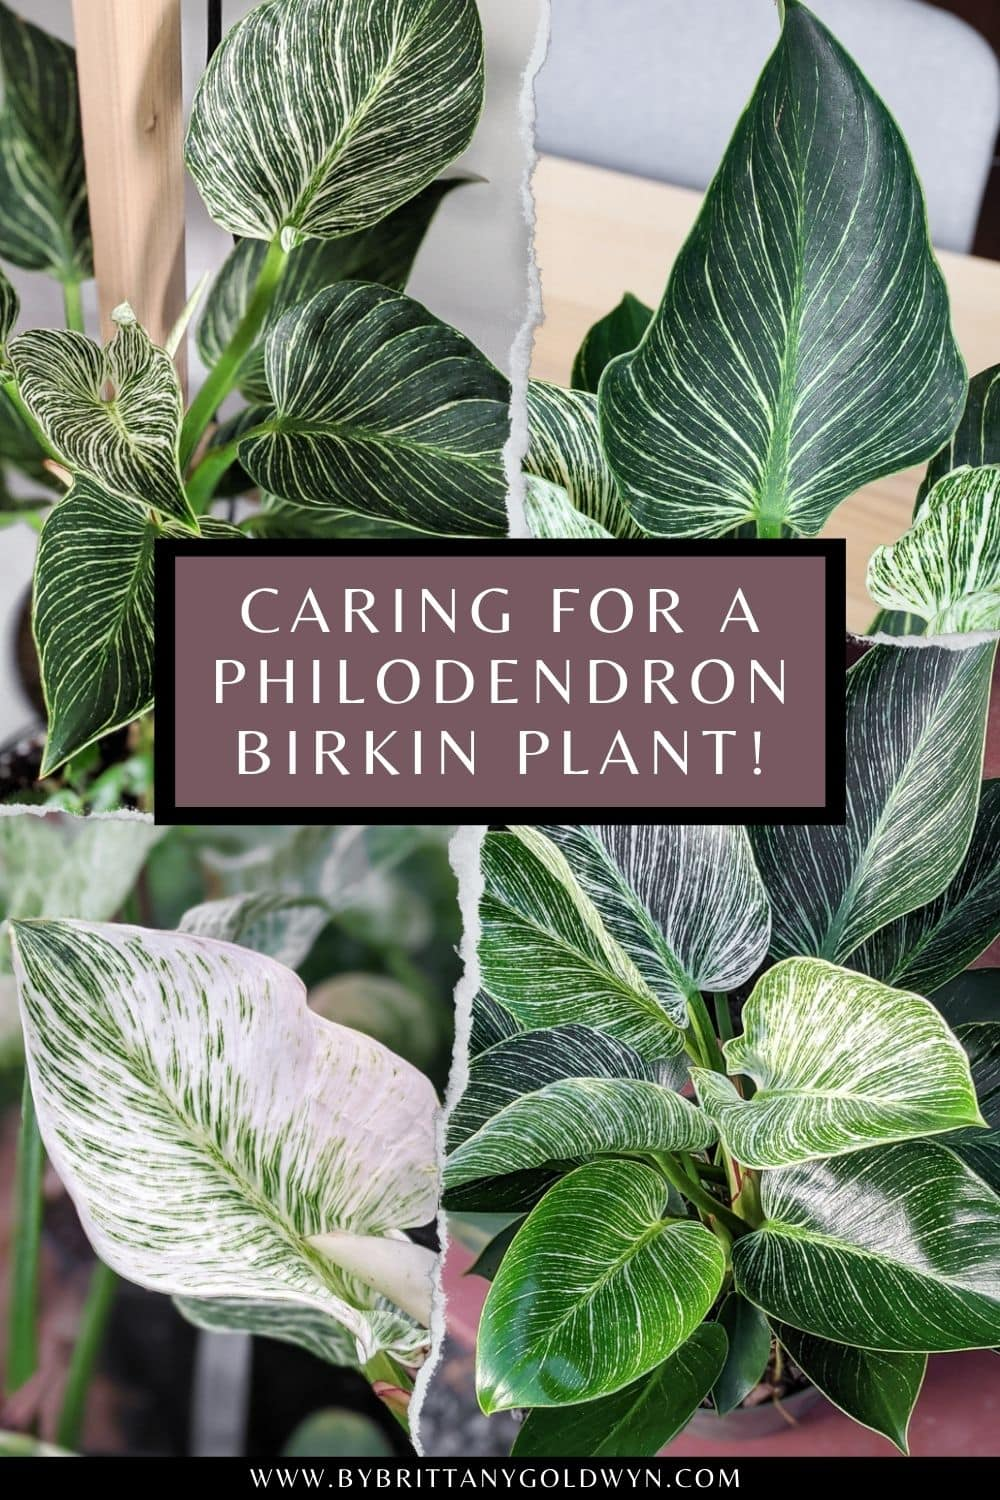 photos of philodendron birkin with text overlay about philodendron birkin care tips